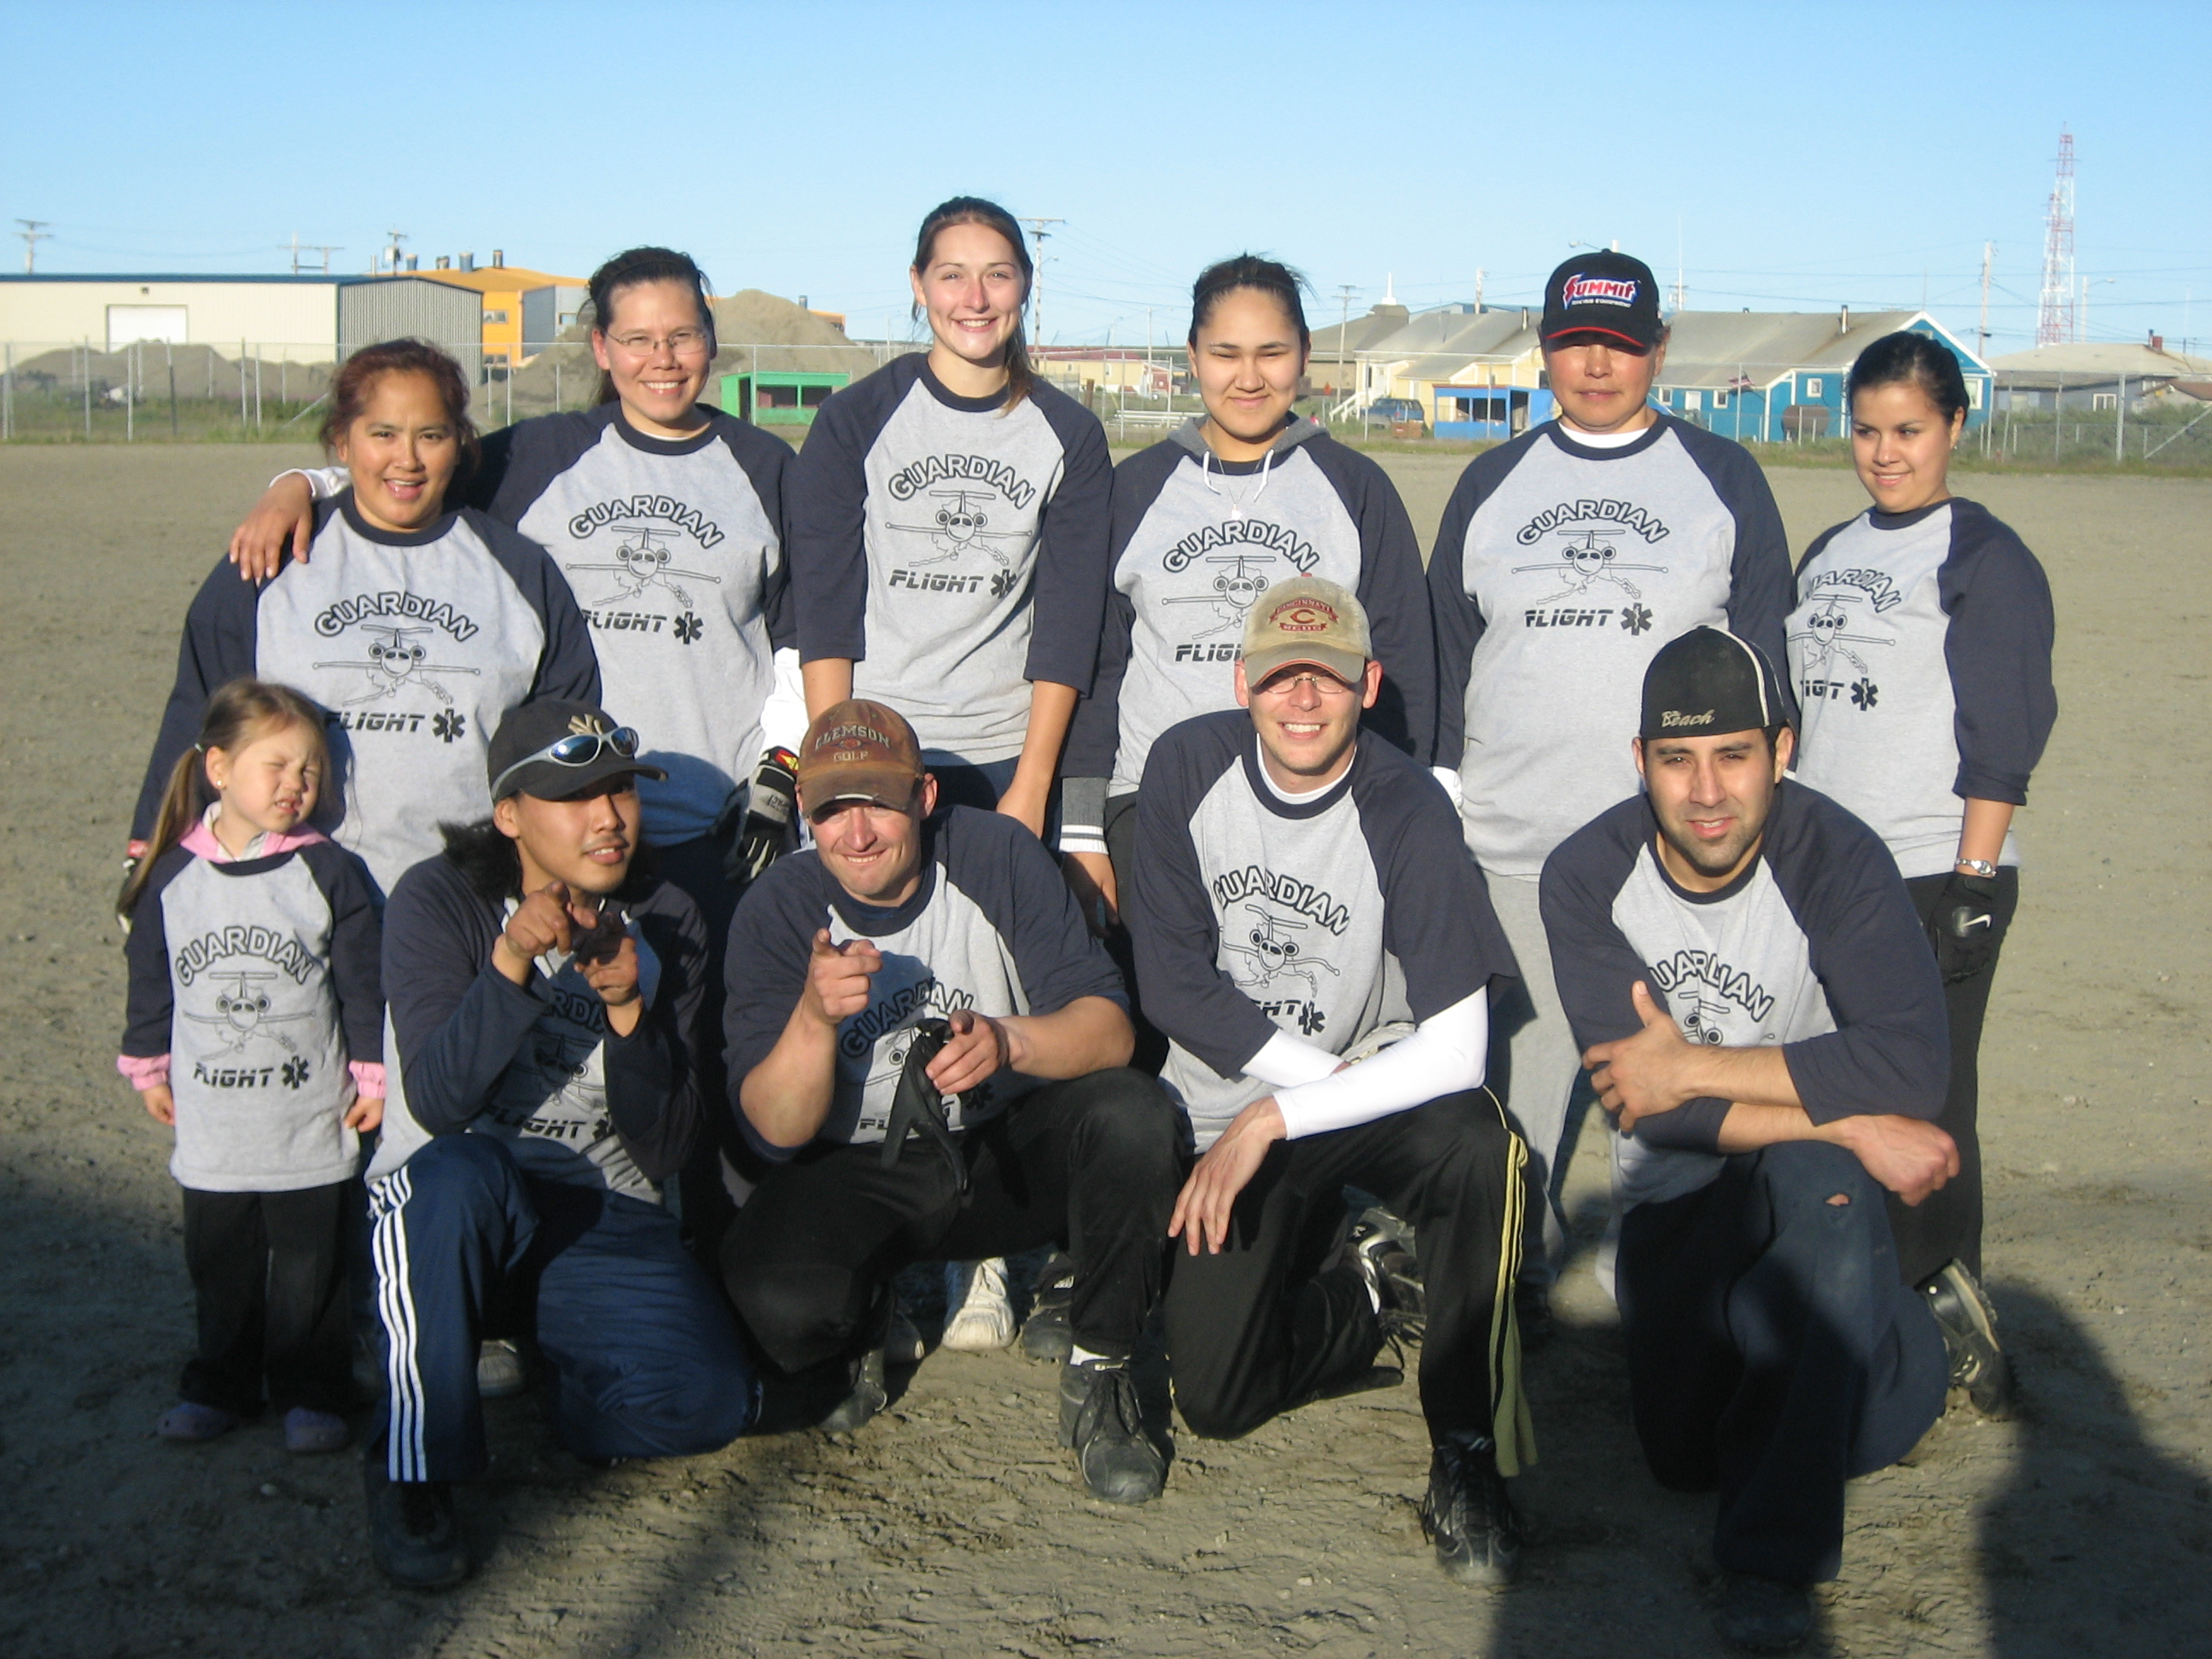 View full-size image Softball Team Names Coed